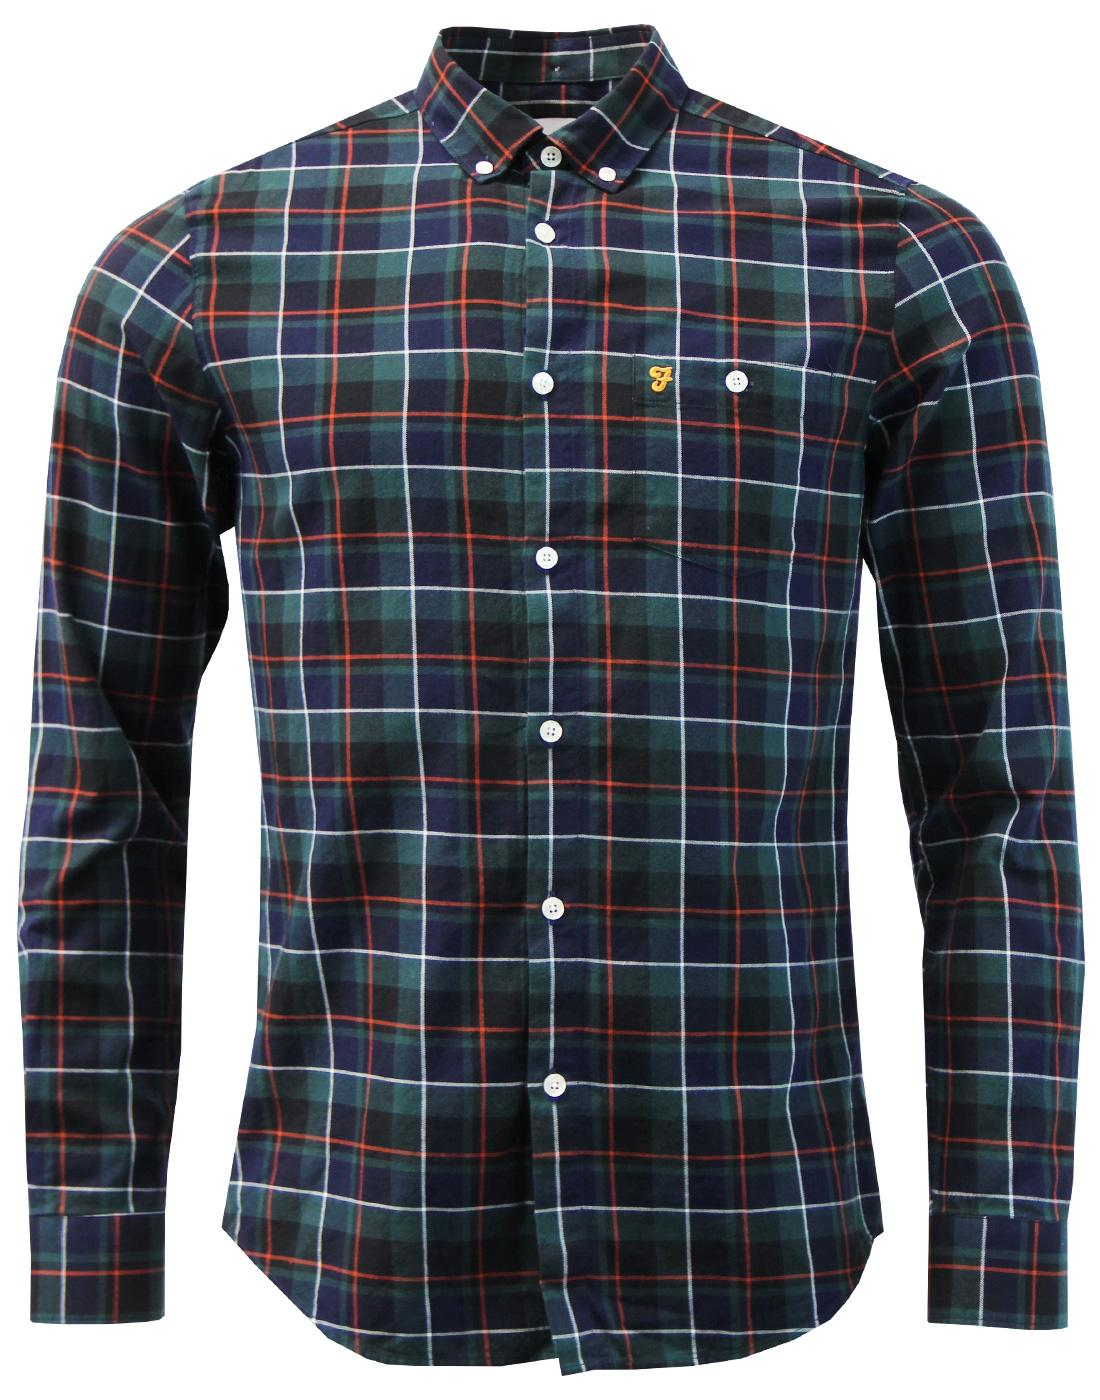 Oldman FARAH 60s Mod Button Down Check Twill Shirt